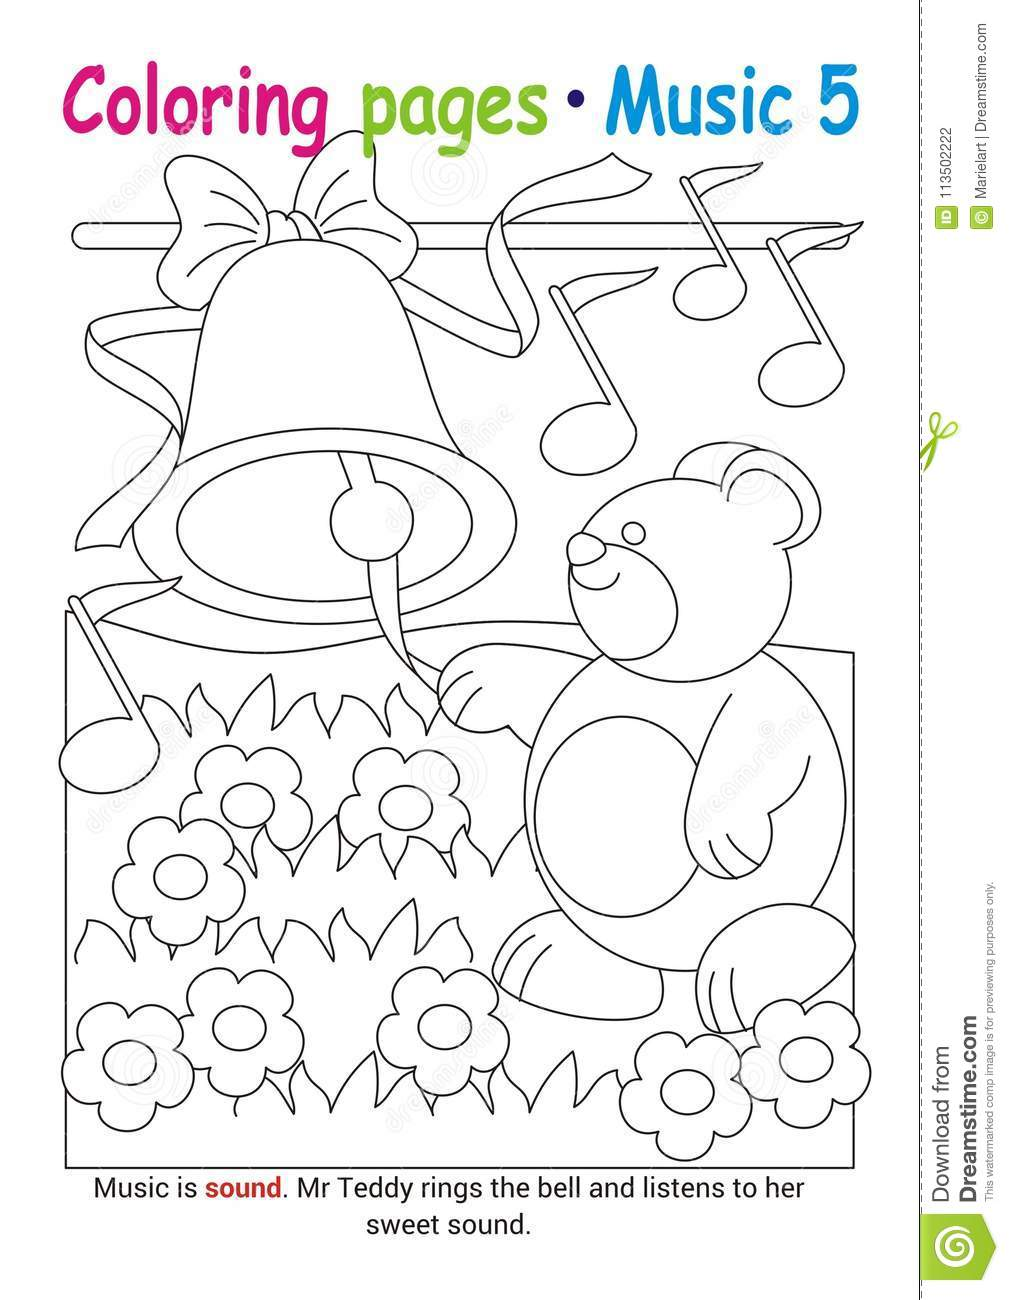 Coloring books page 5 learn about music with teddy the bear educational elementary game